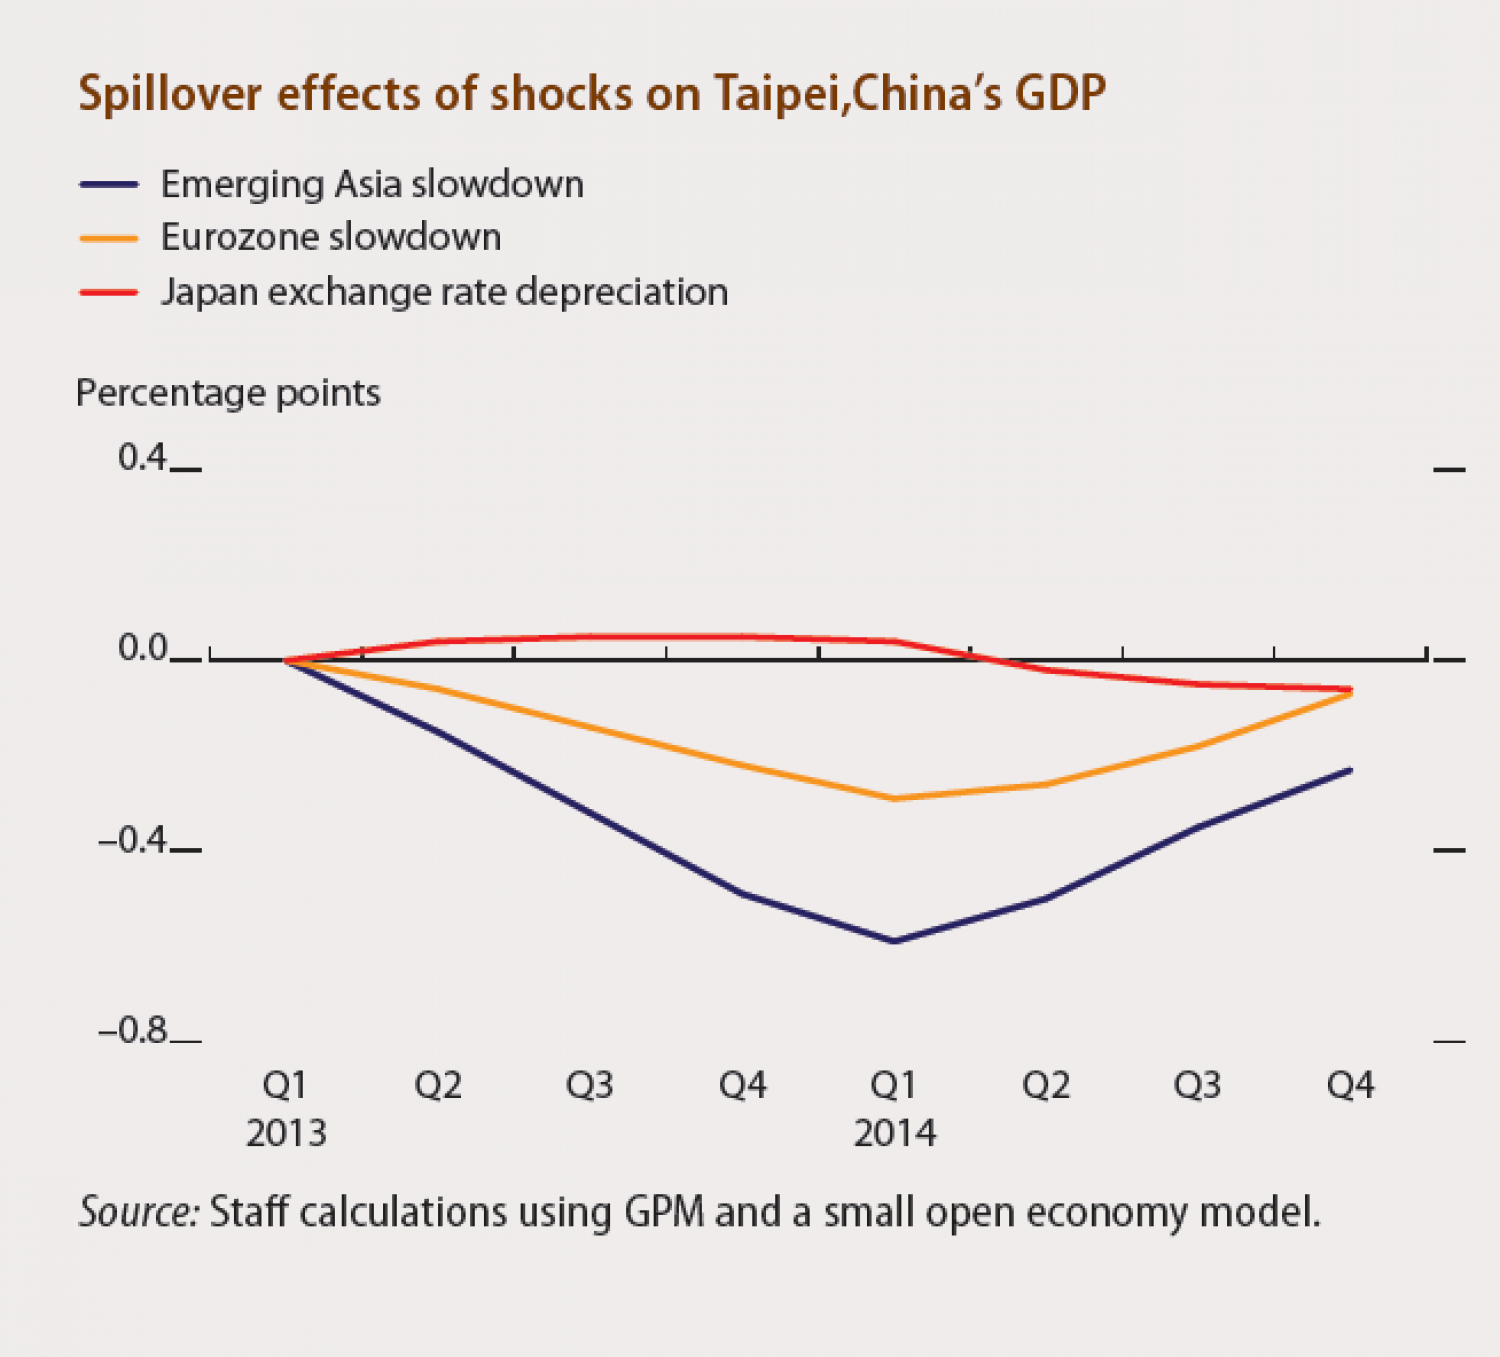 Tapei China -  Spillover effects of shocks on Tapei, China's GDP Infographic